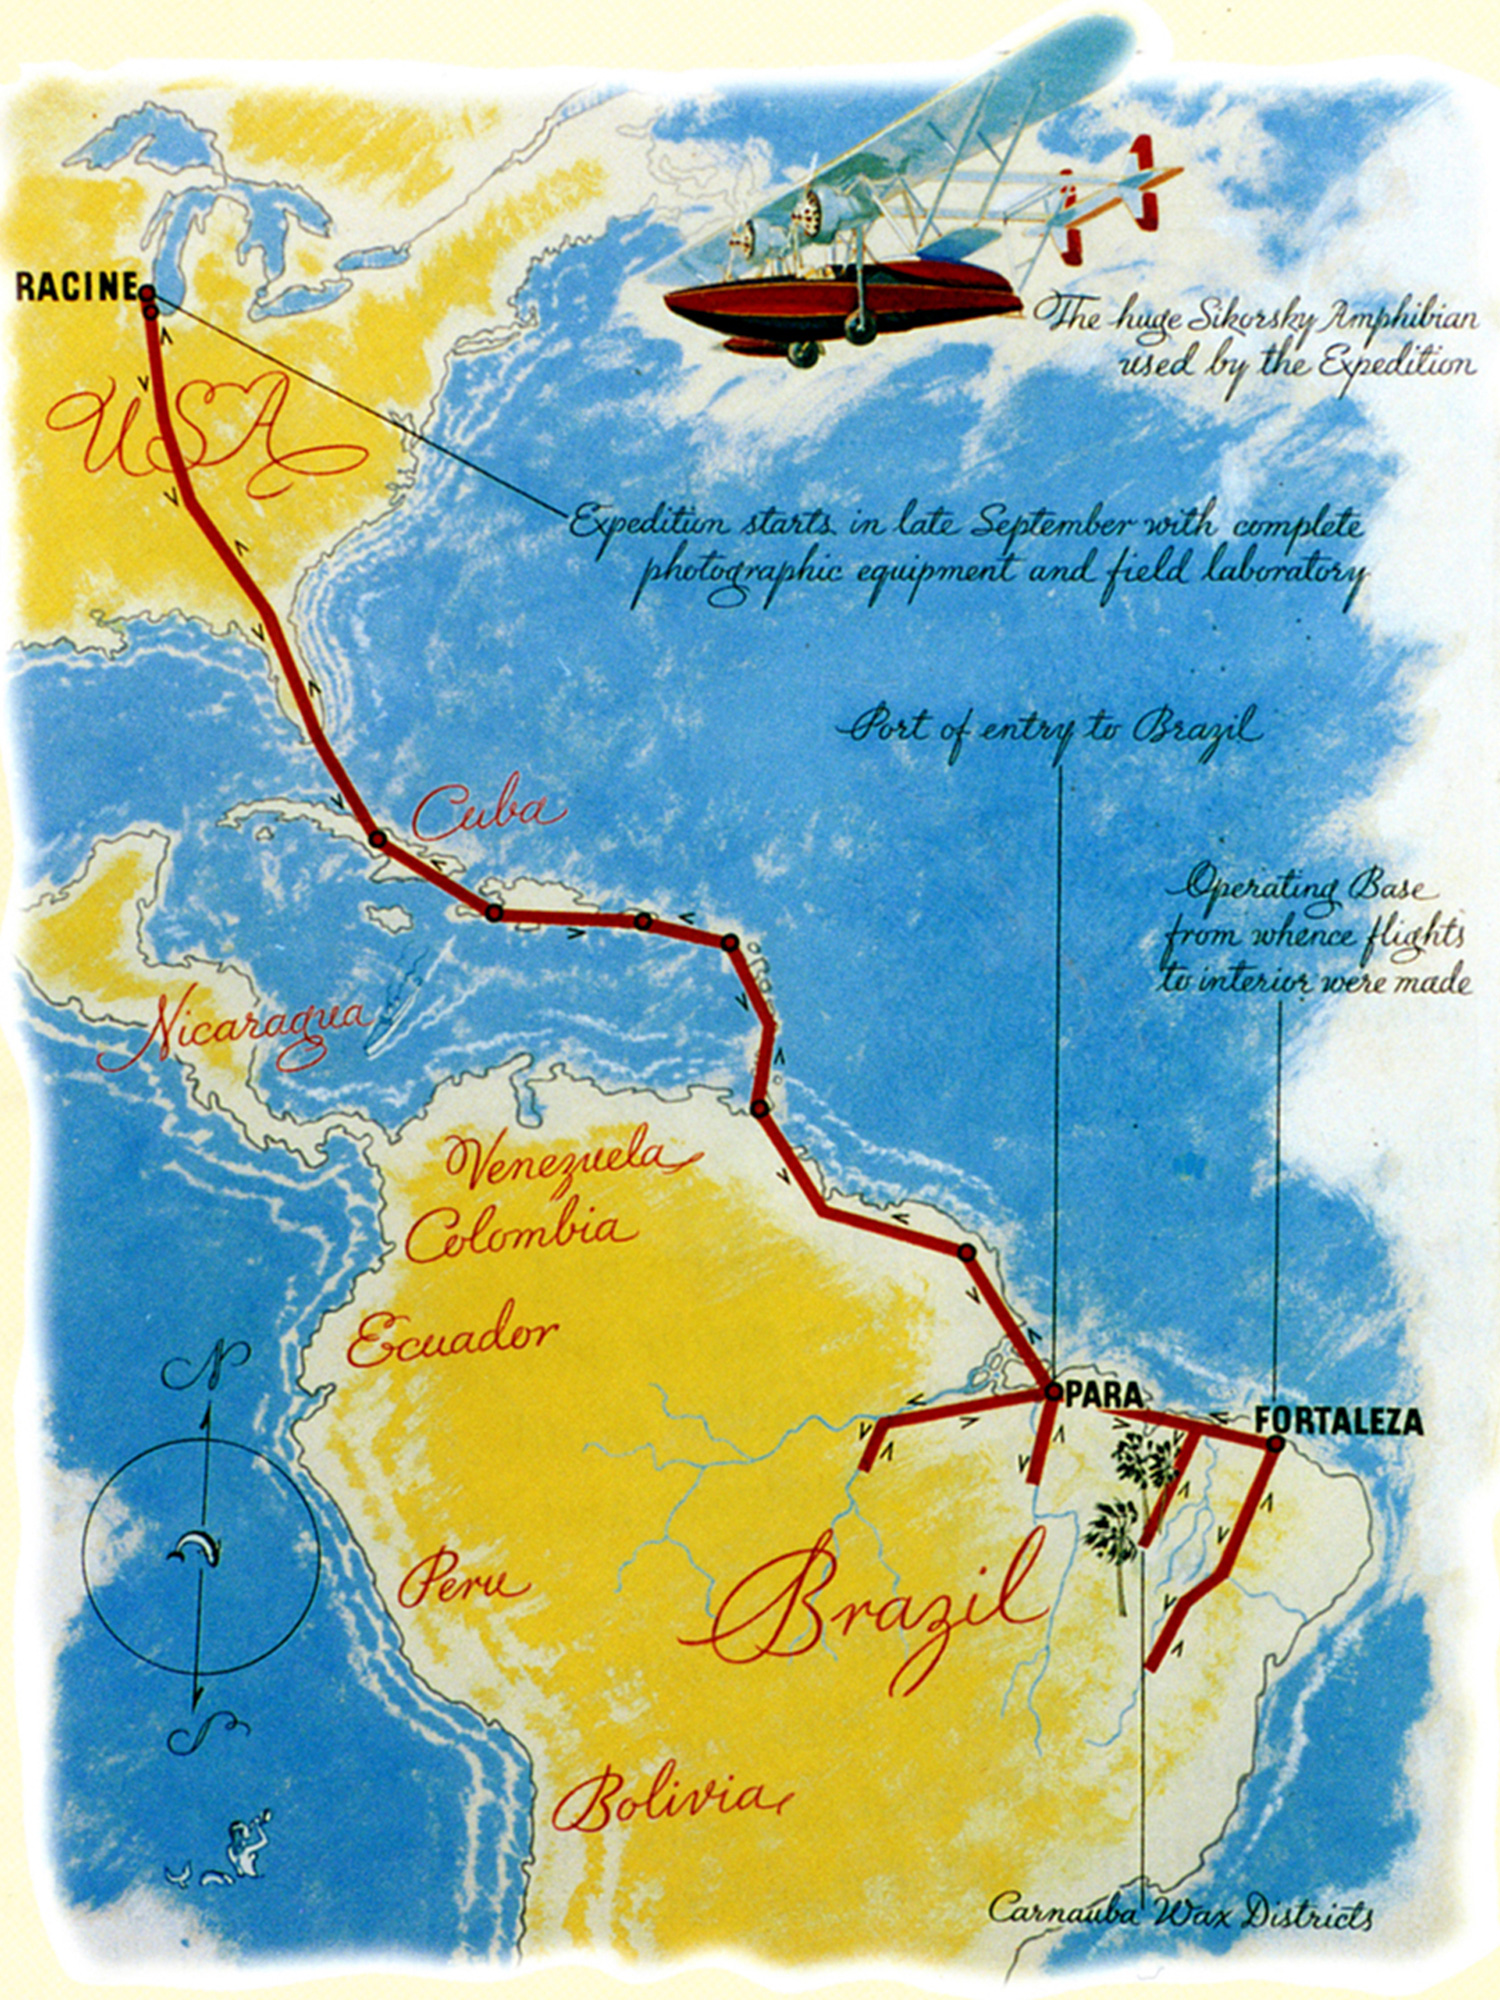 H.F. Johnson Jr.'s 1935 flight path to source carnaúba palm wax in Brazil.